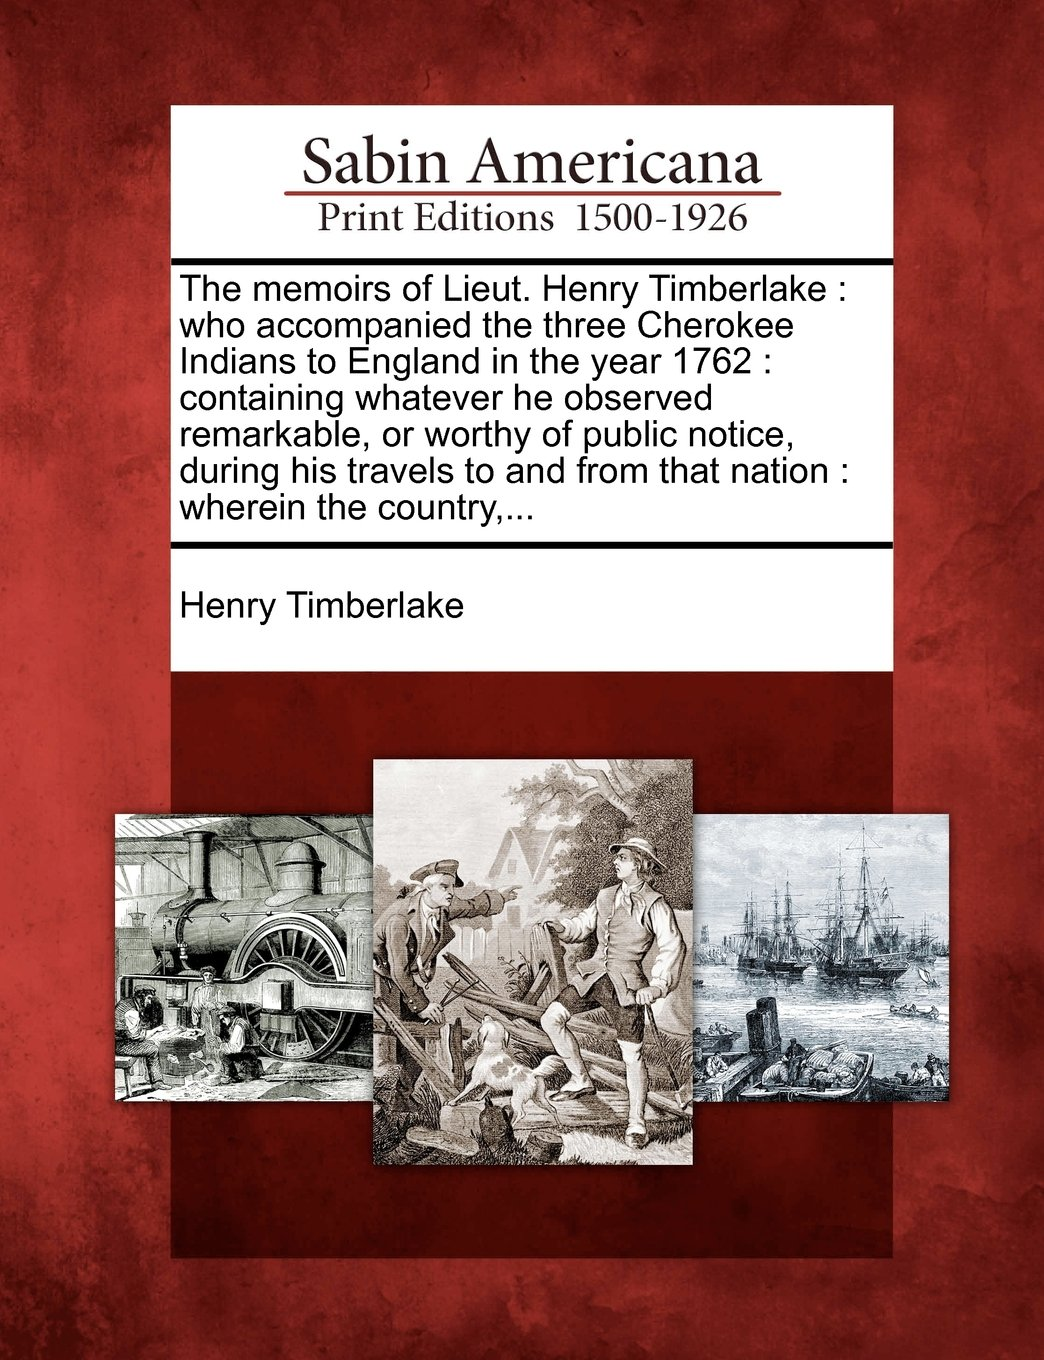 The memoirs of Lieut. Henry Timberlake: who accompanied the three Cherokee Indians to England in the year 1762 : containing whatever he observed ... from that nation : wherein the country,... pdf epub